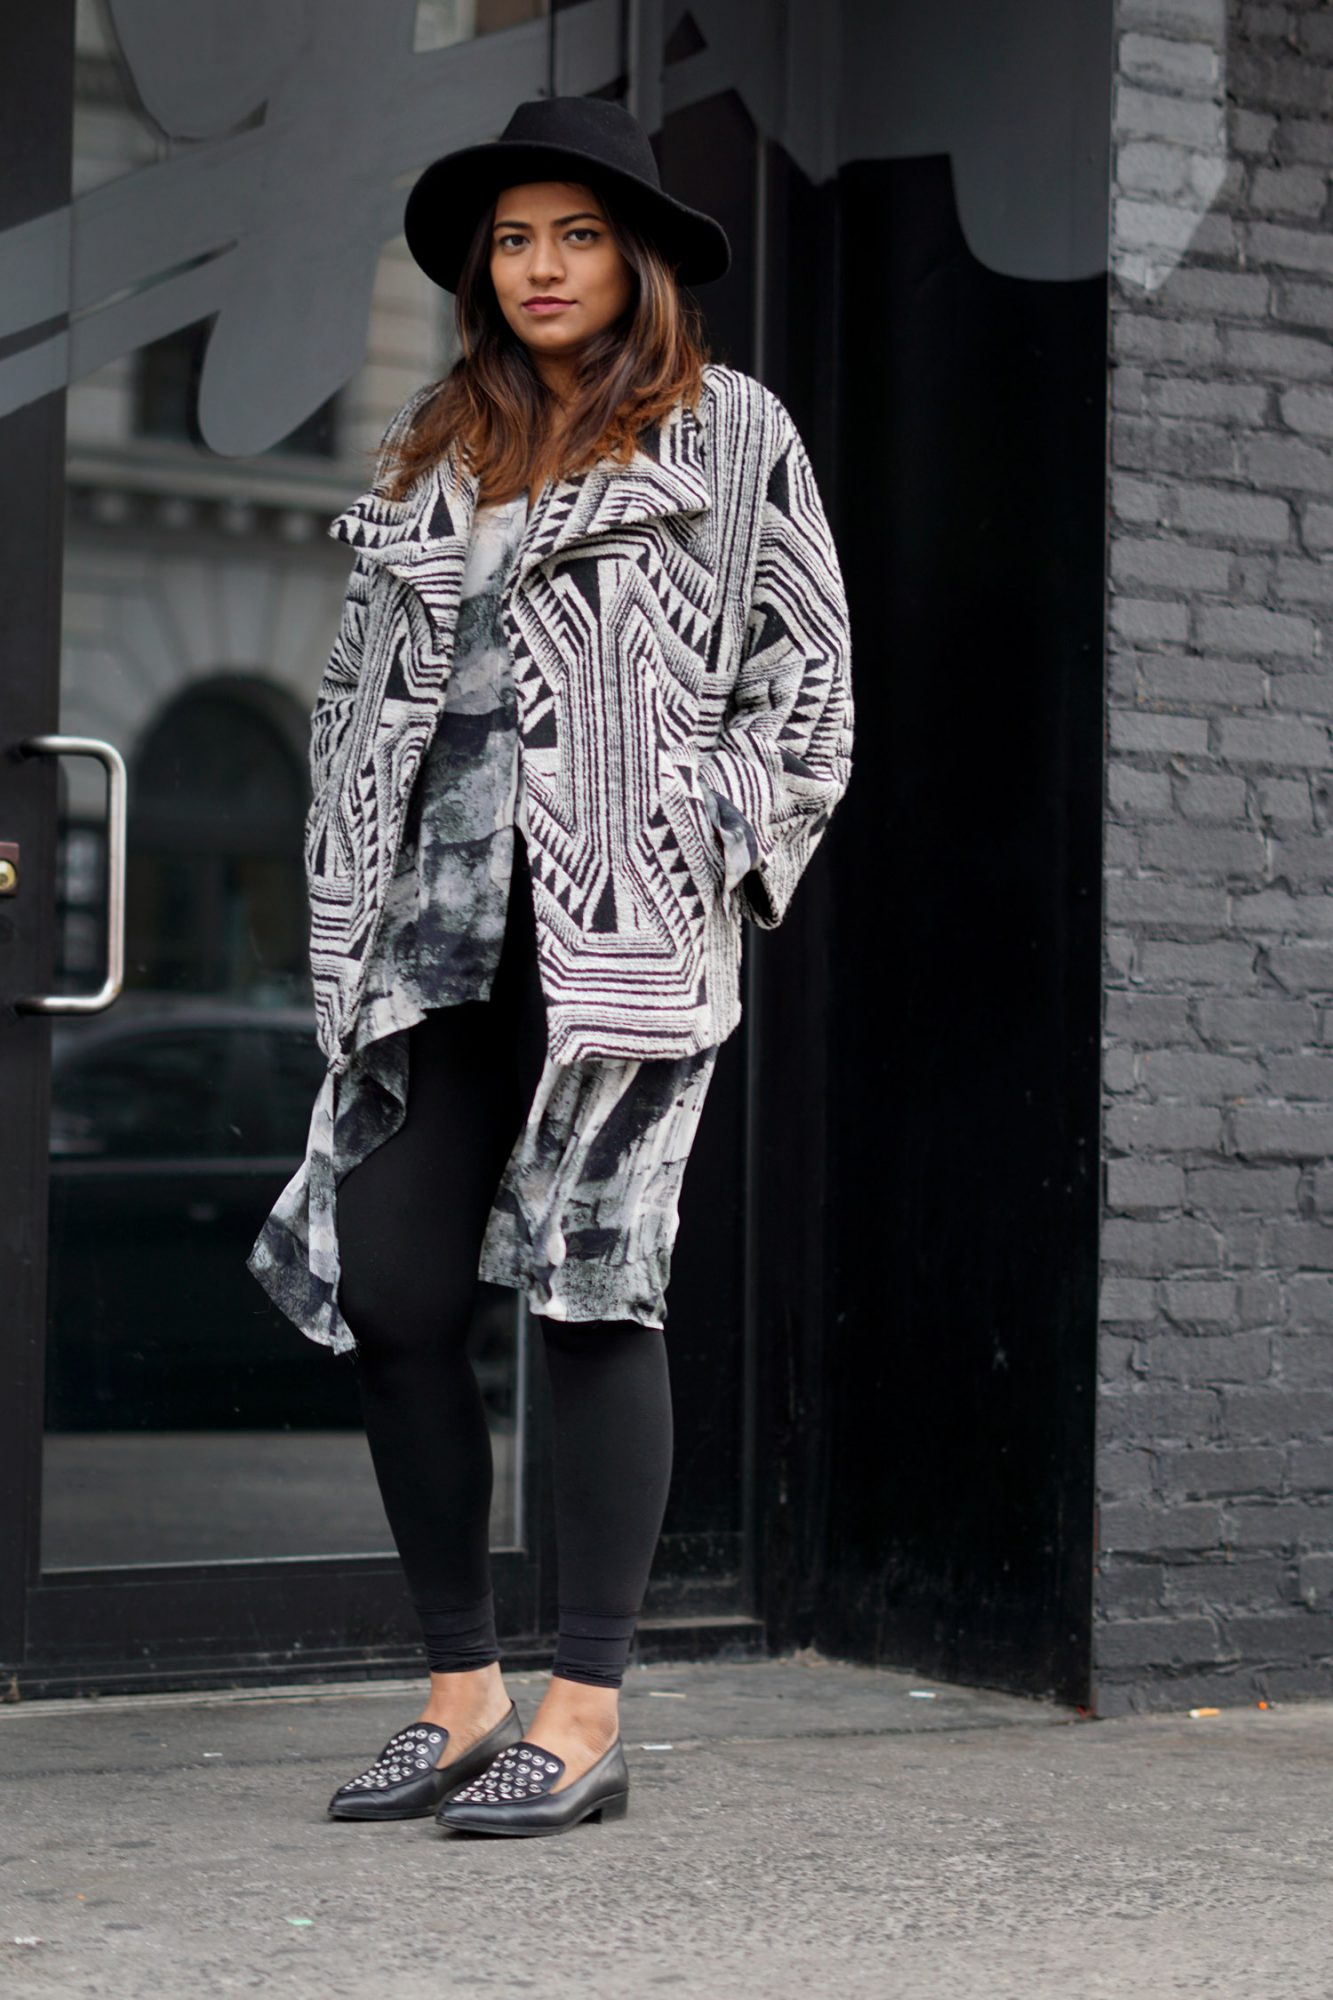 winter-fashion-nyc-bowery-street-style